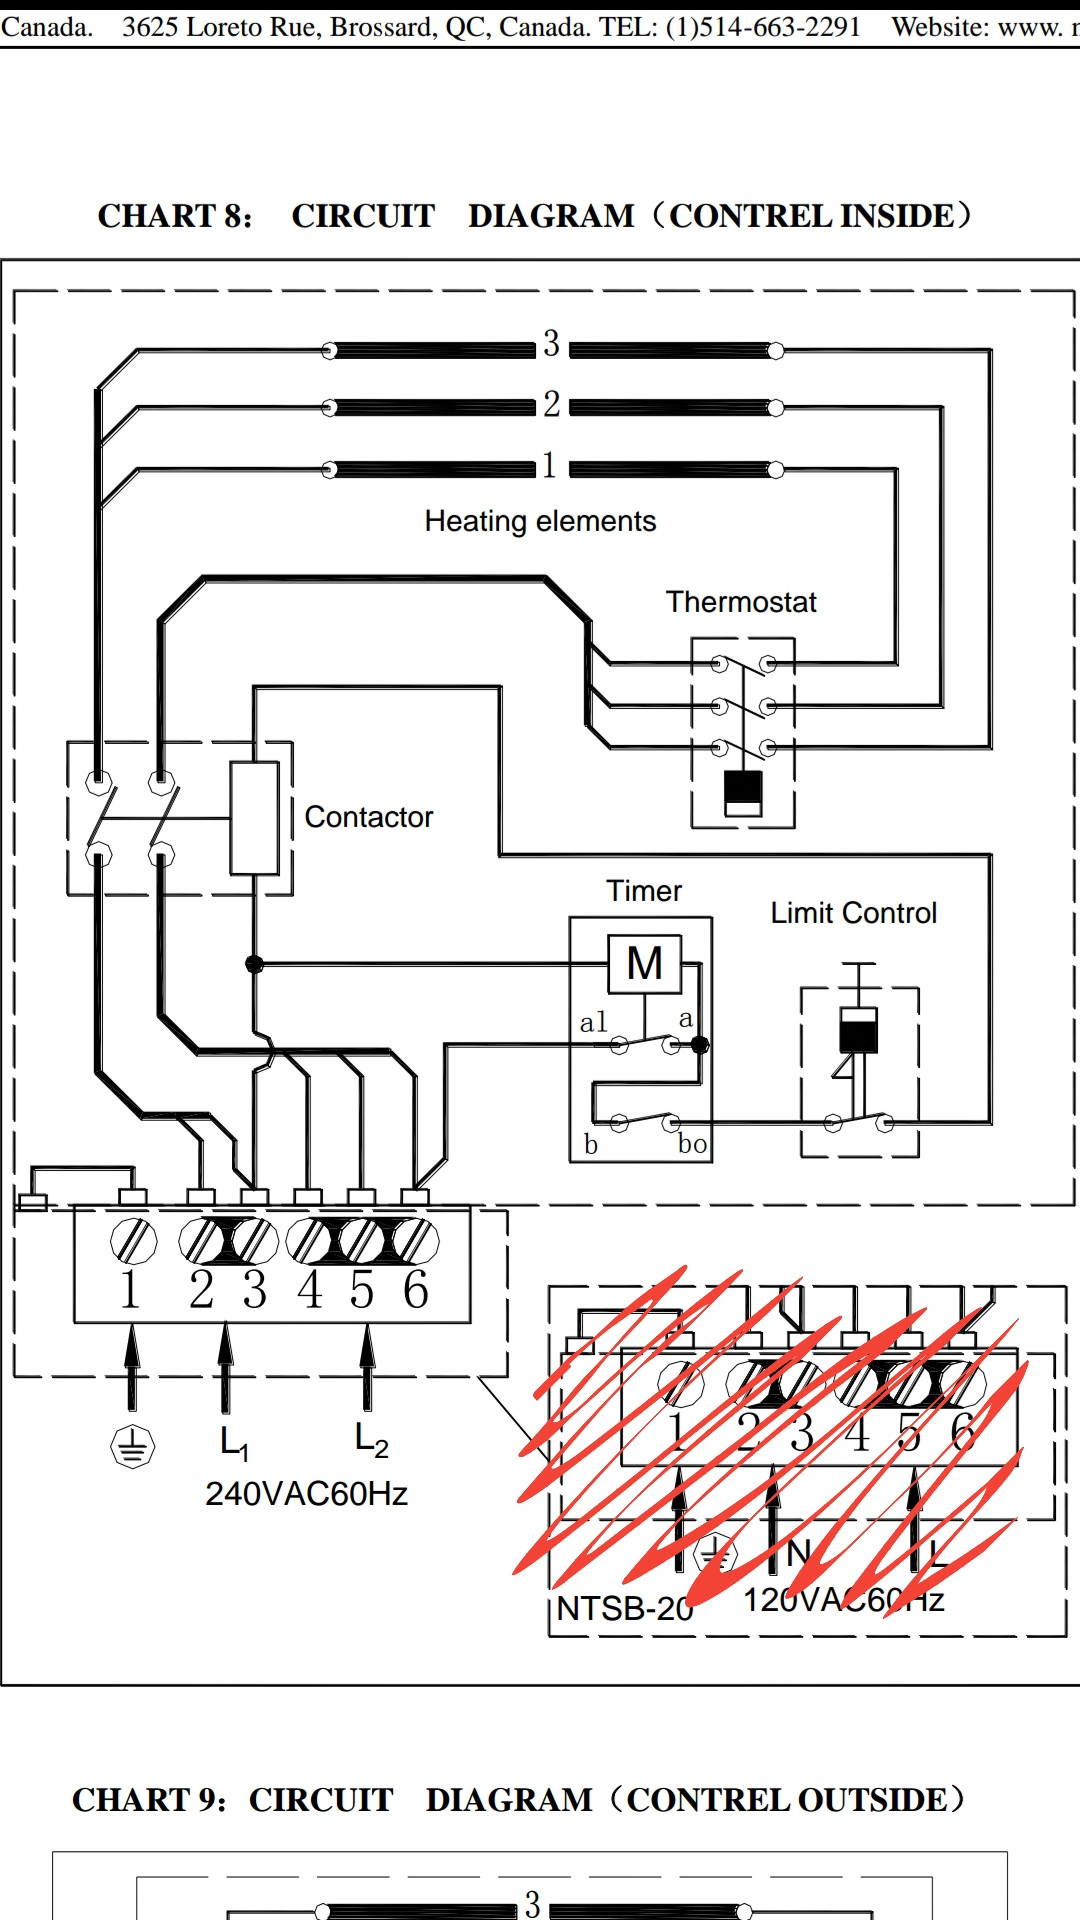 WRG-1635] Hatco Booster Heater Wiring Diagram on